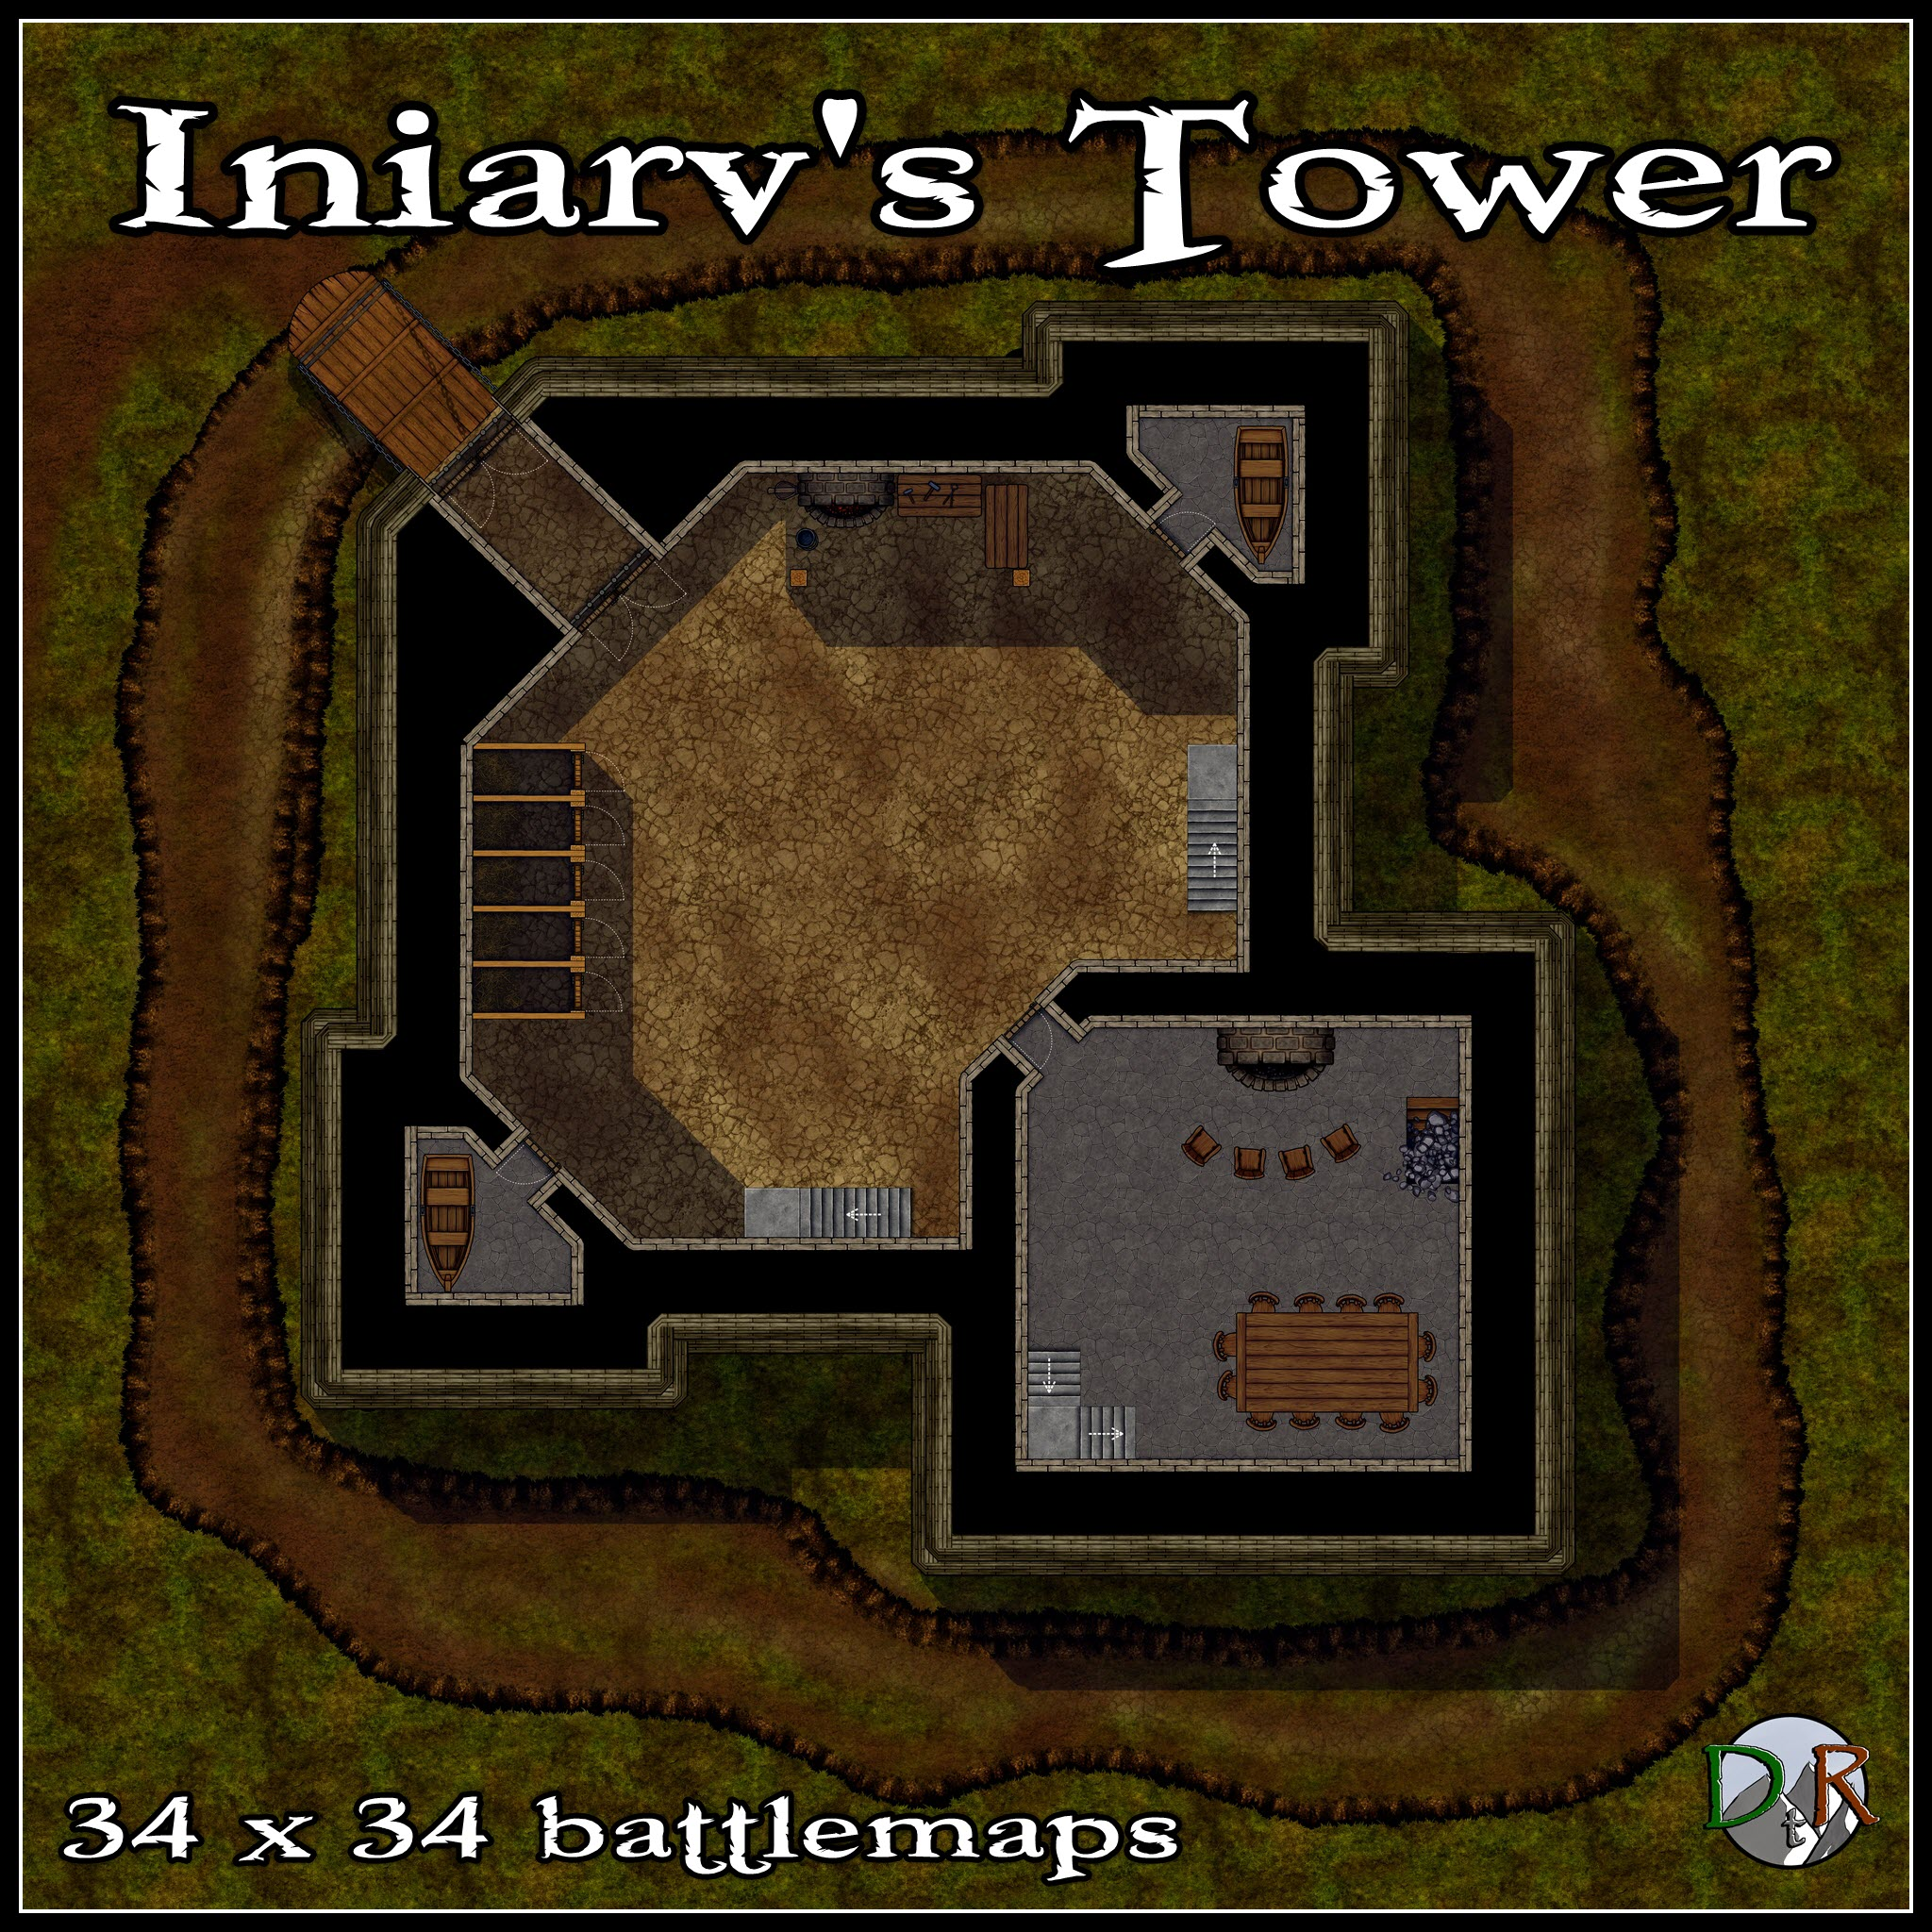 Iniarv's Tower Example battlemap